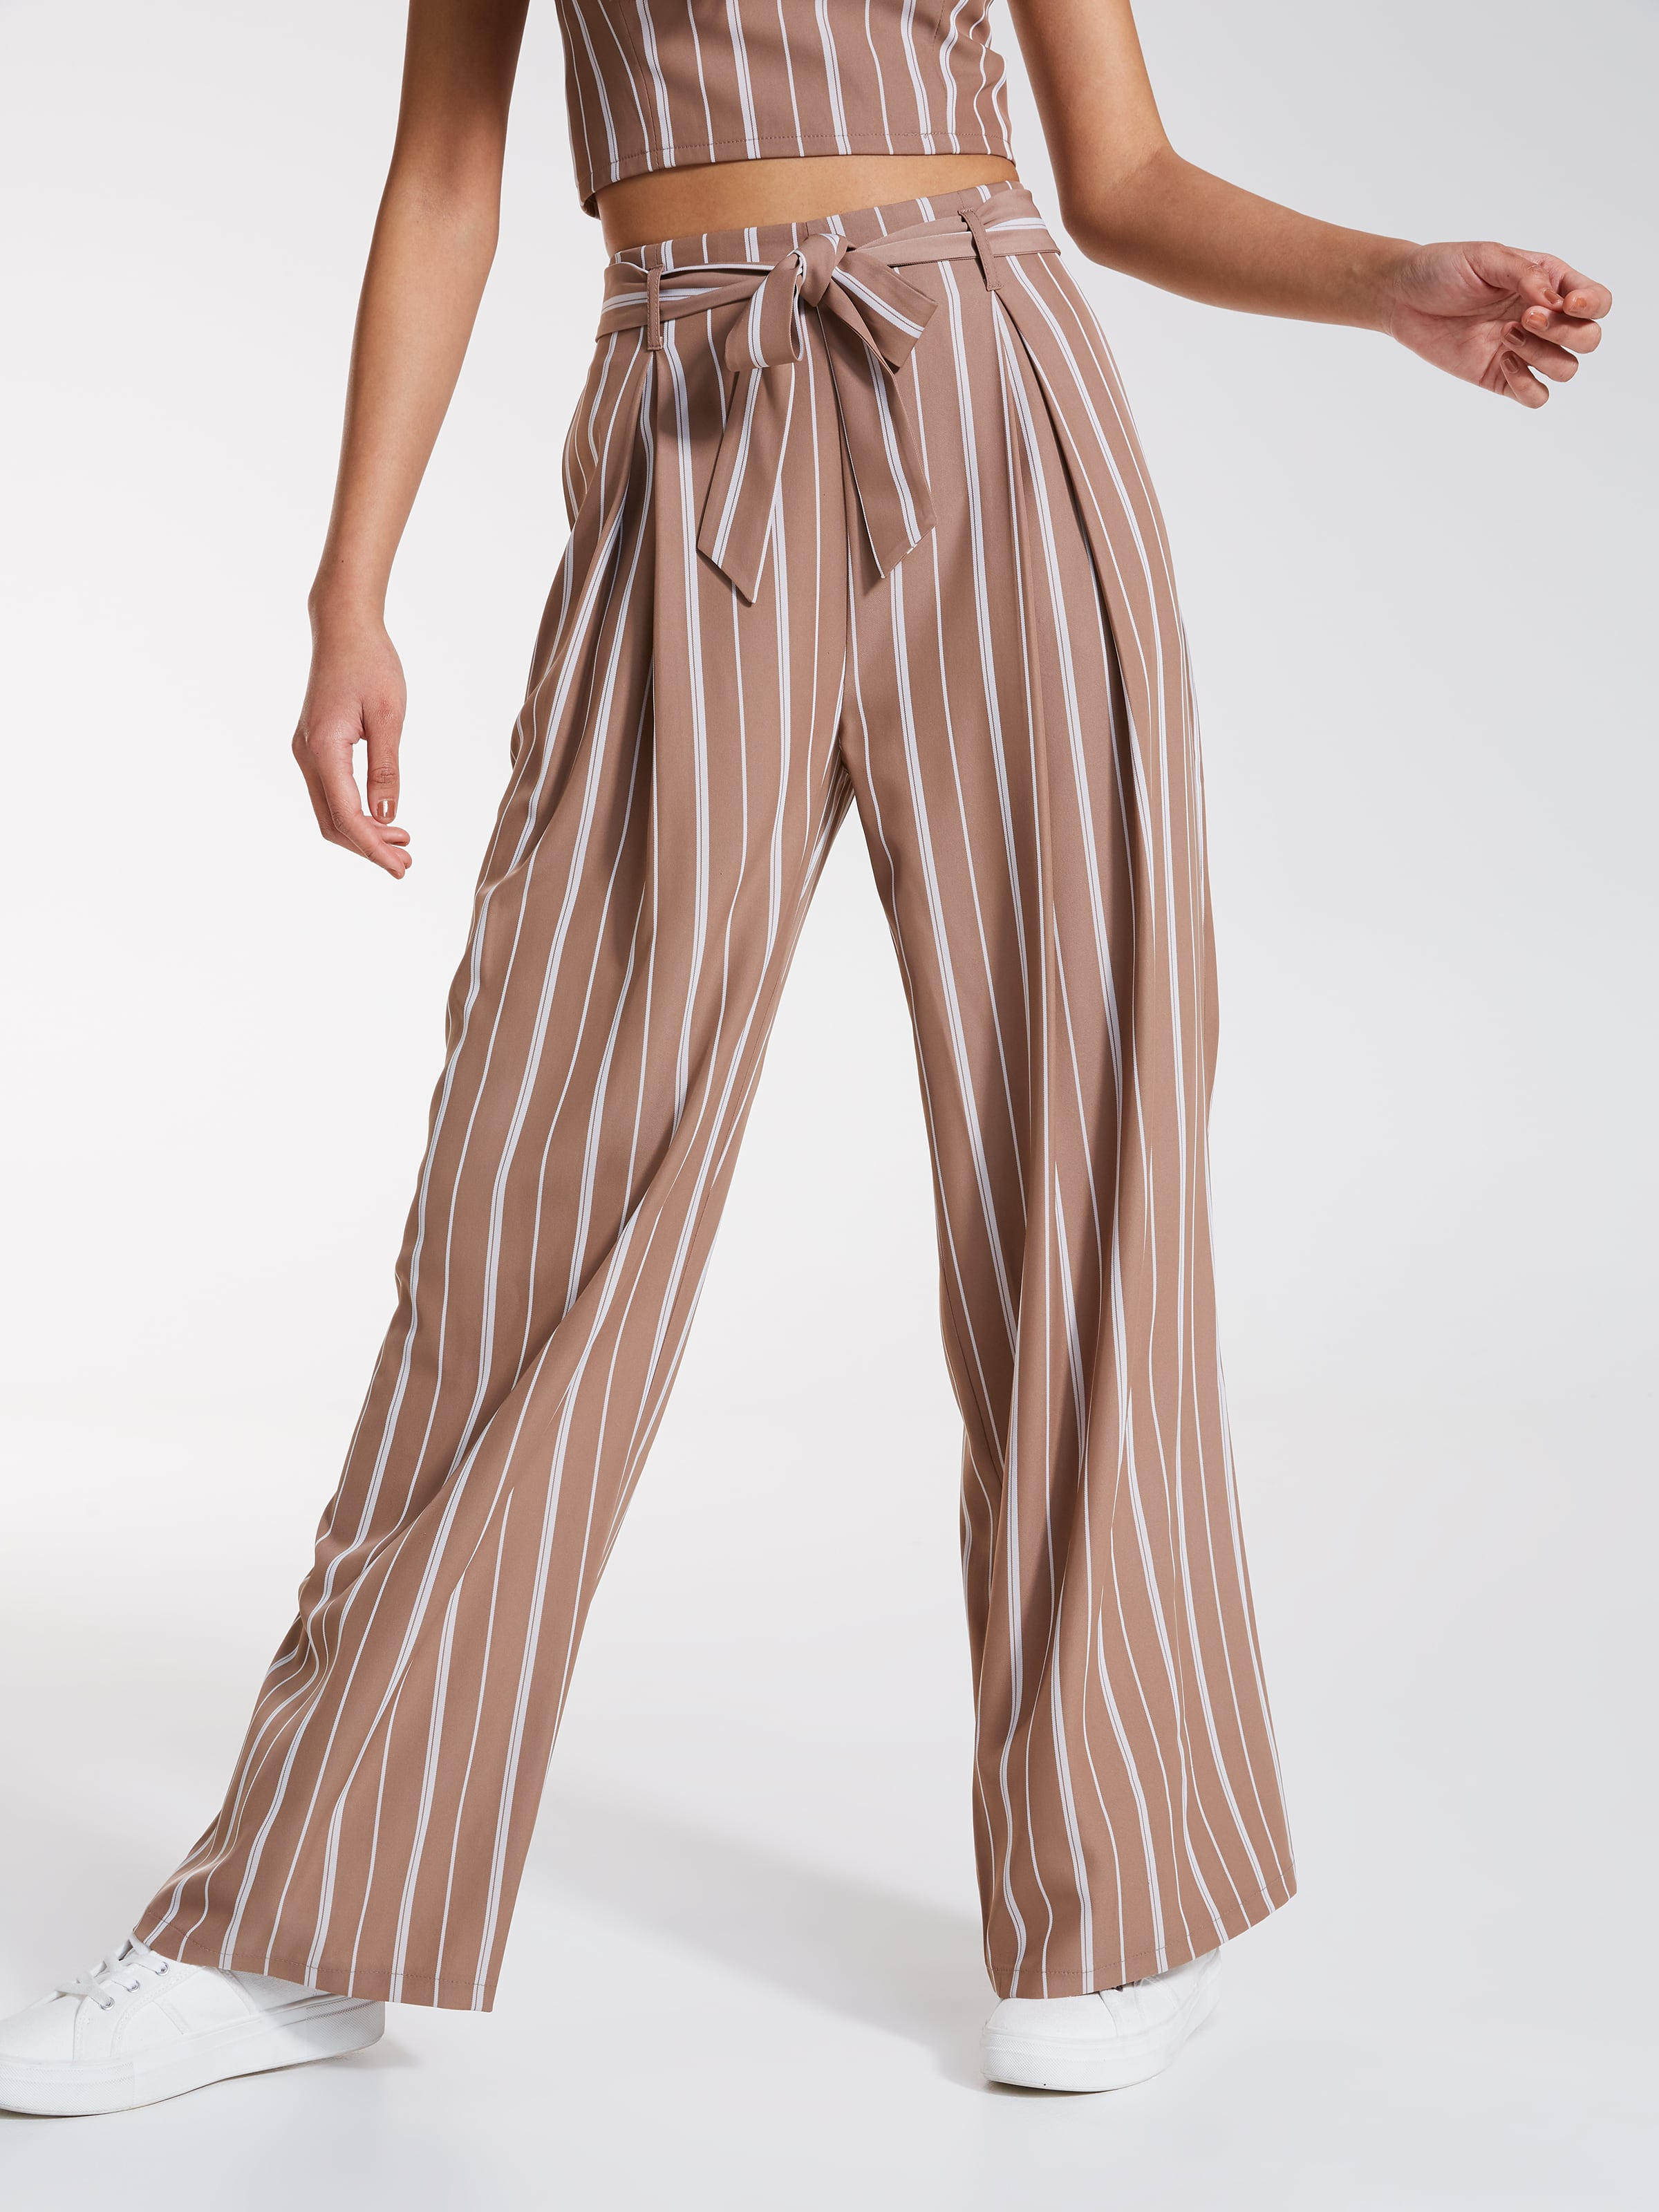 Pleat Front Stripe Palazzo Pant Dotti Online Jeans Woman 7 9 Mocca Image For From